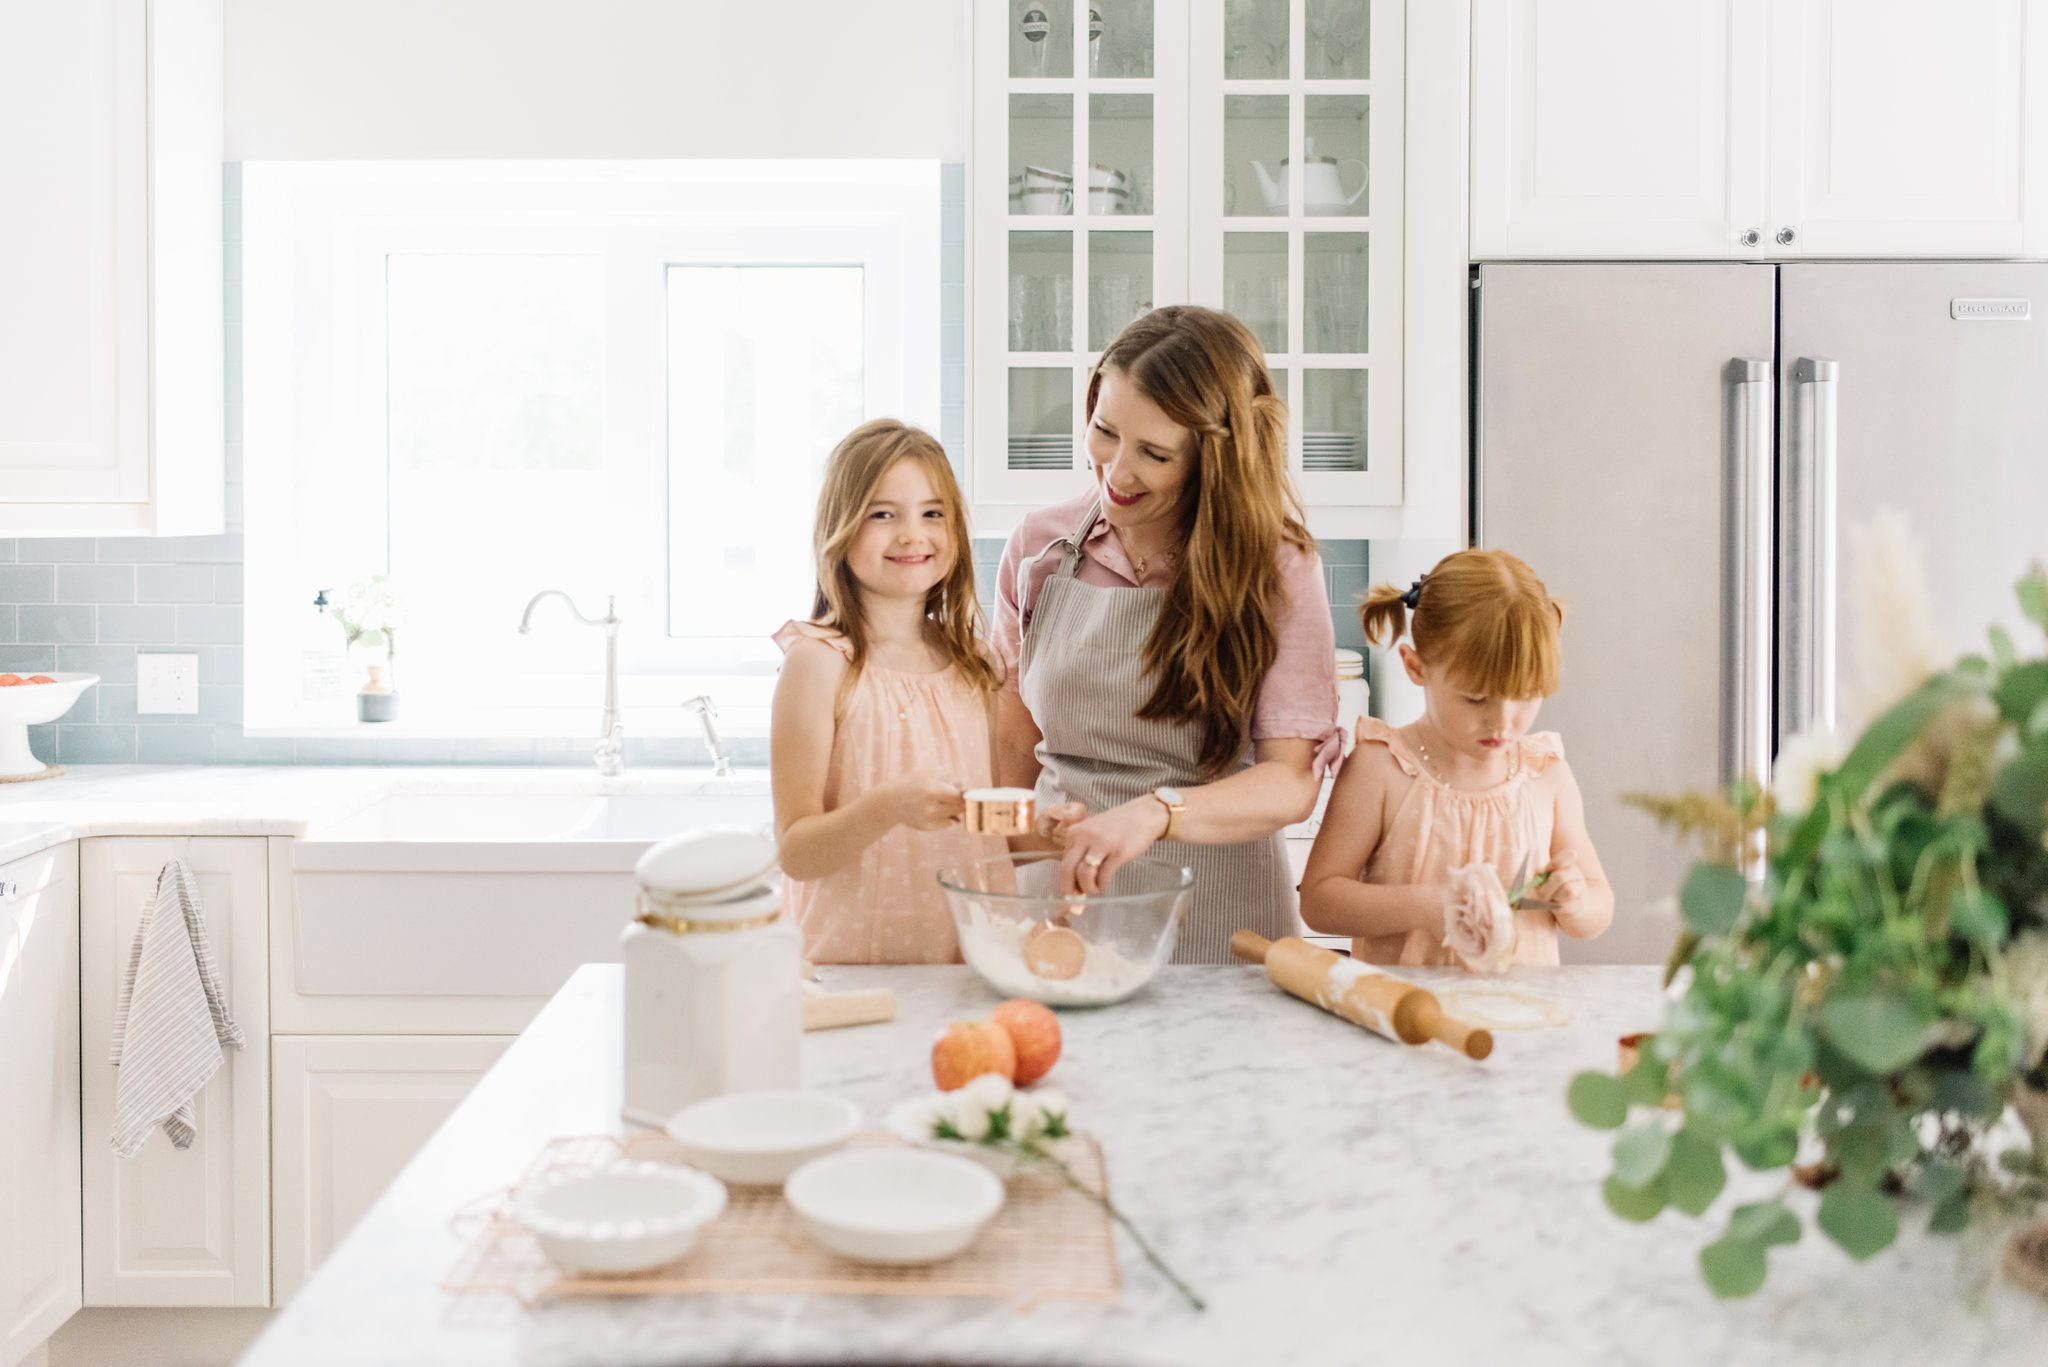 Woman and children baking in the kitchen